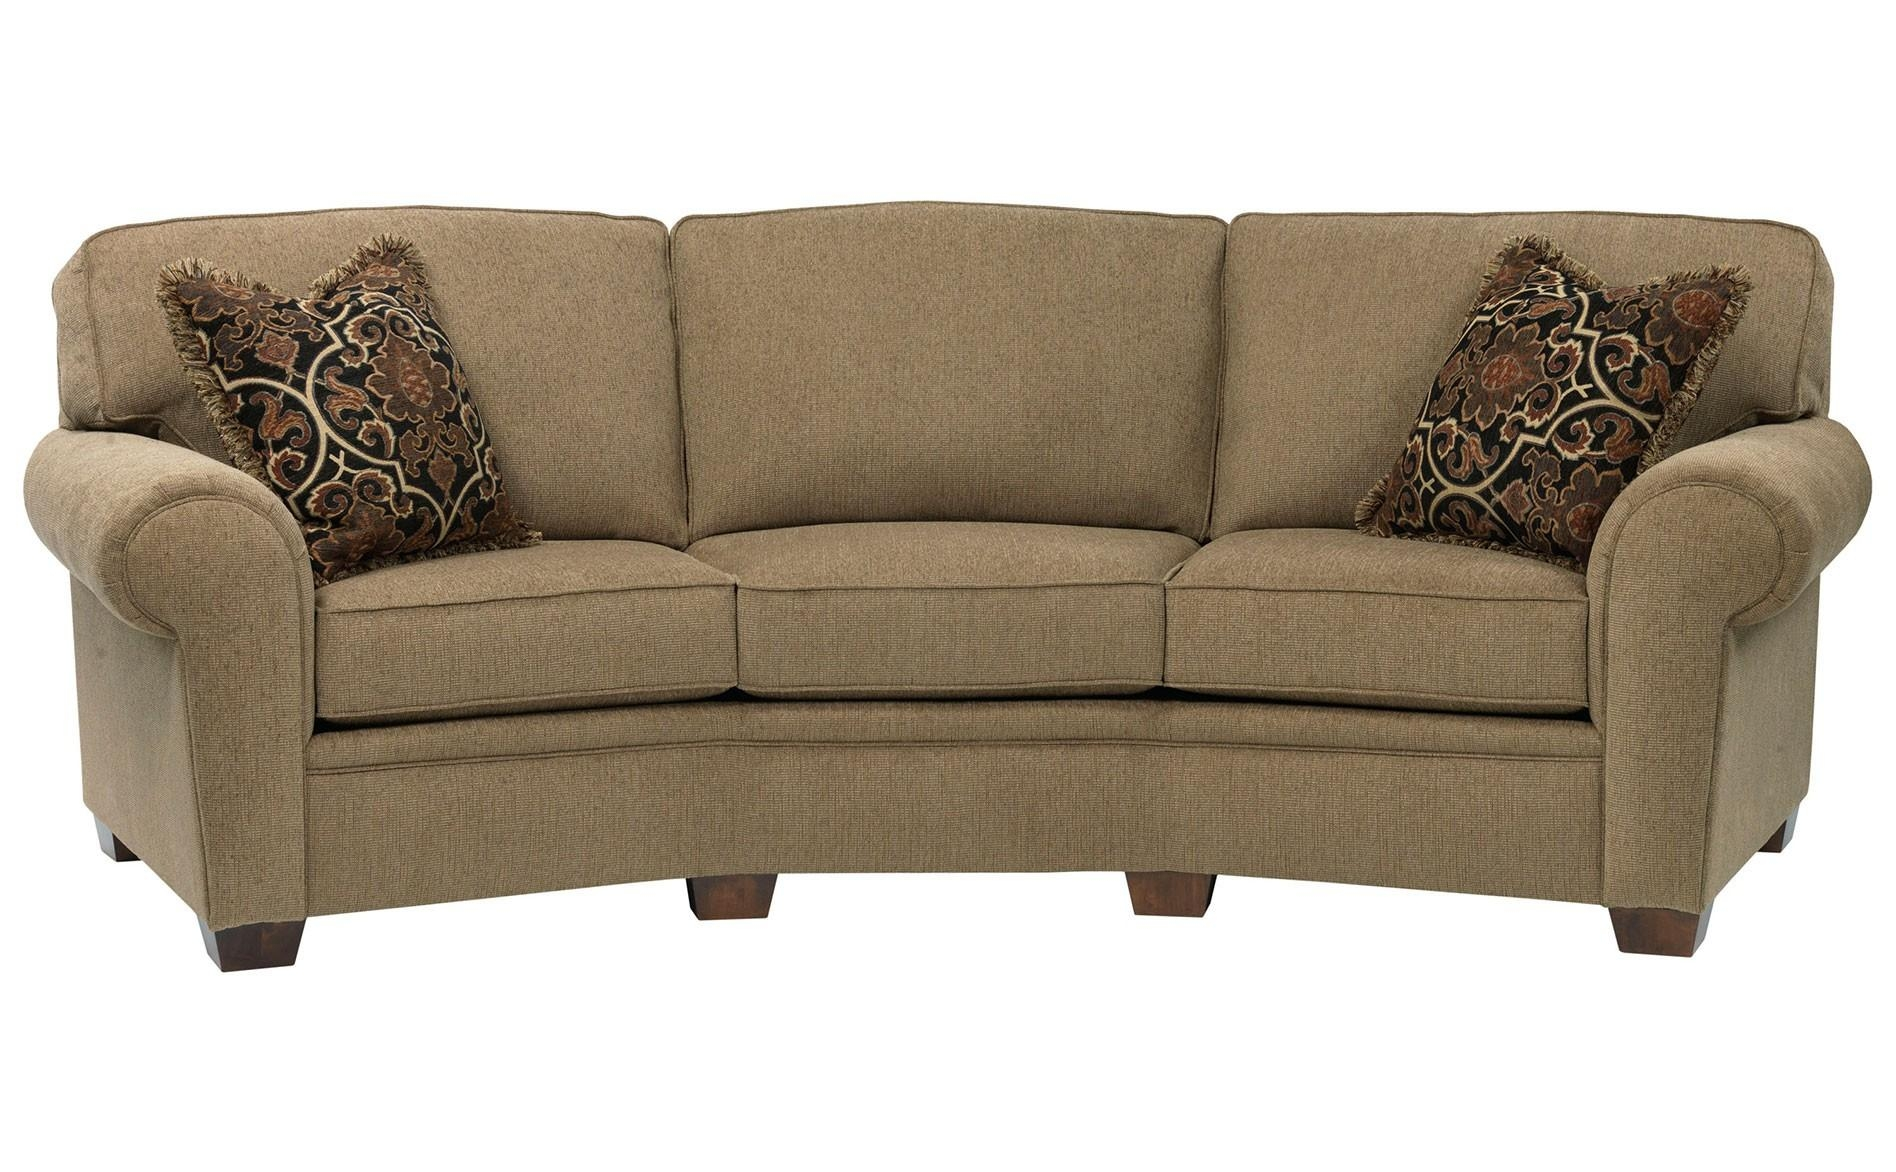 Furniture: Flex Steel Couch | Broyhill Recliner Sofas | Broyhill Sofa Intended For Broyhill Reclining Sofas (View 6 of 20)